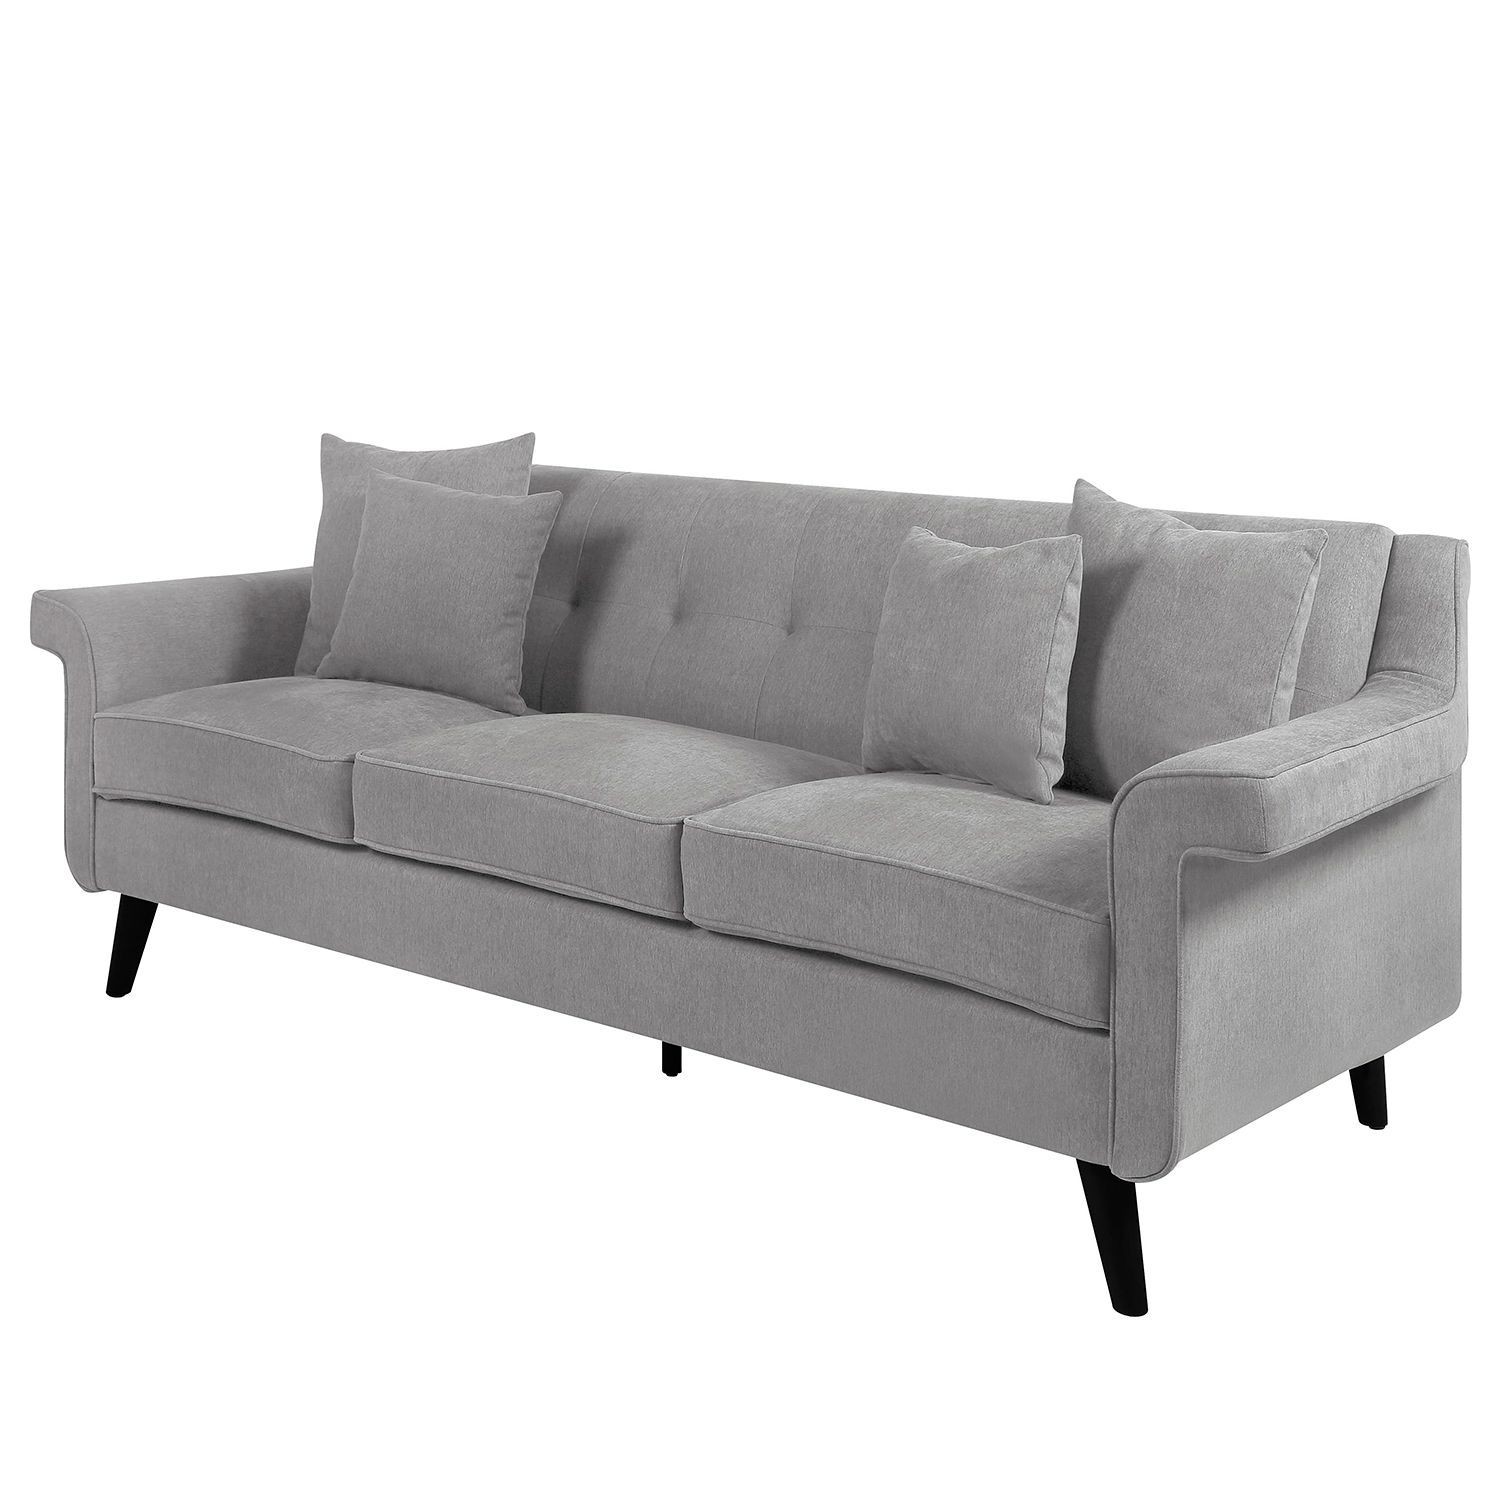 Big Sofa Paderborn Microfaser Couch Excellent Architektur Stoff Couch Turino